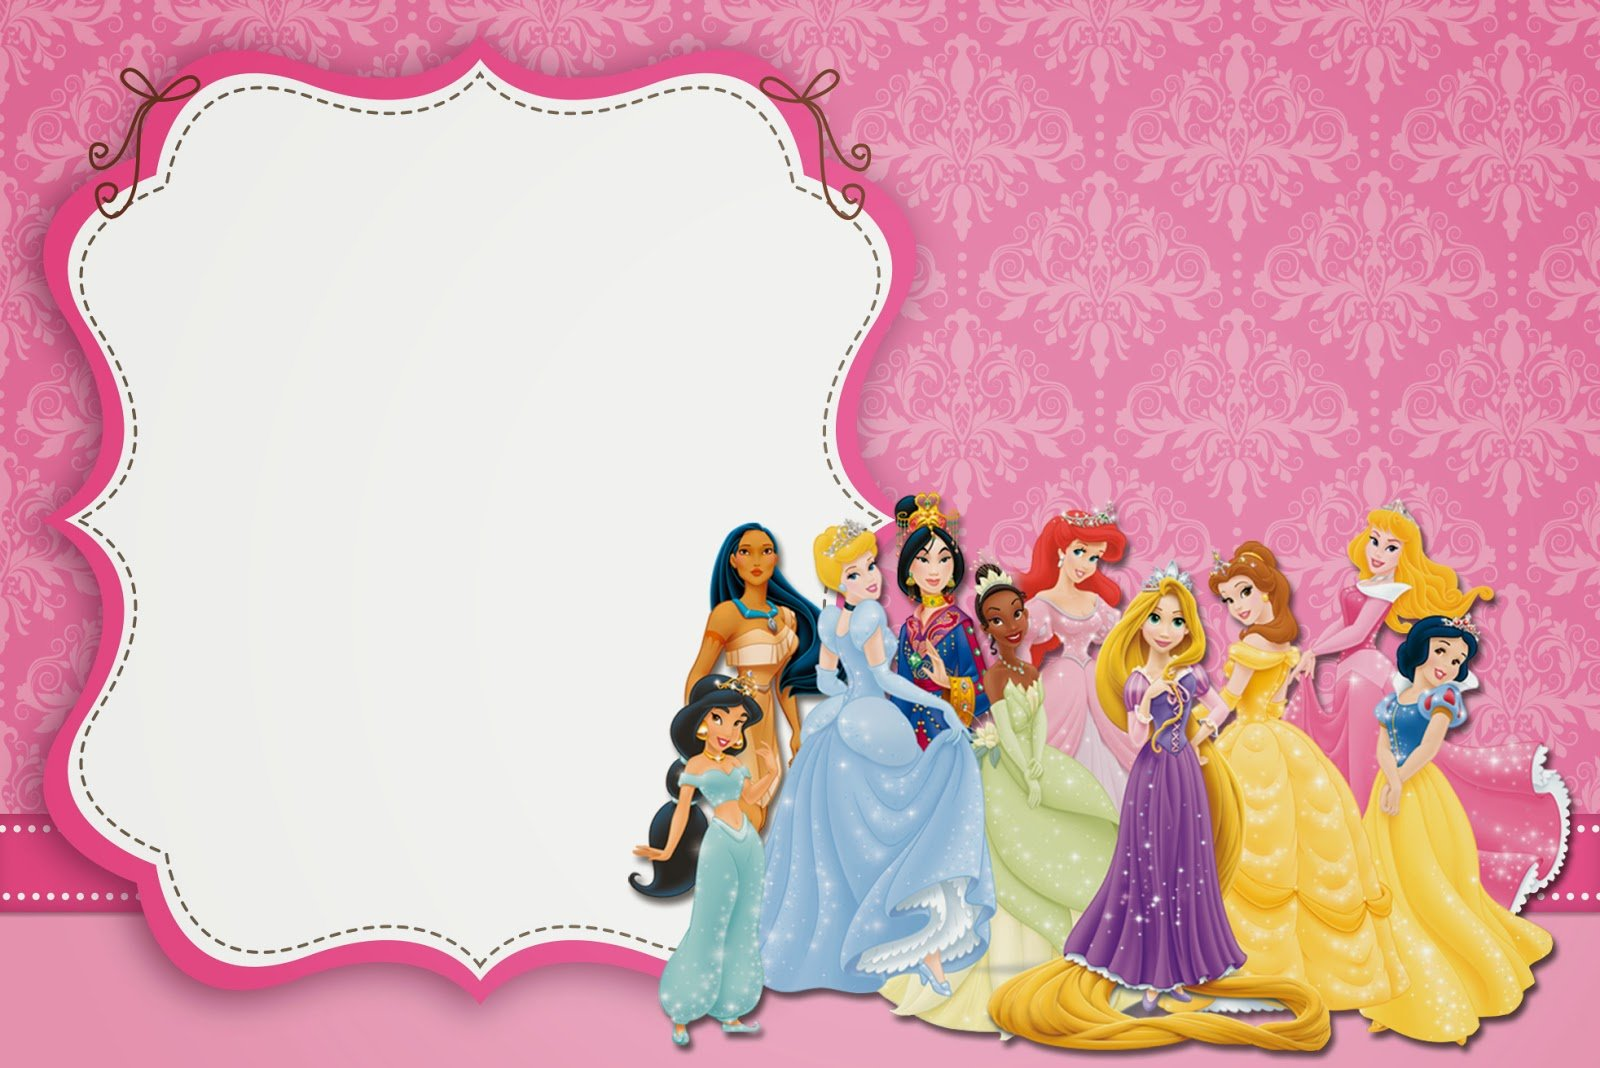 Disney Princess Party  Free Printable Party Invitations